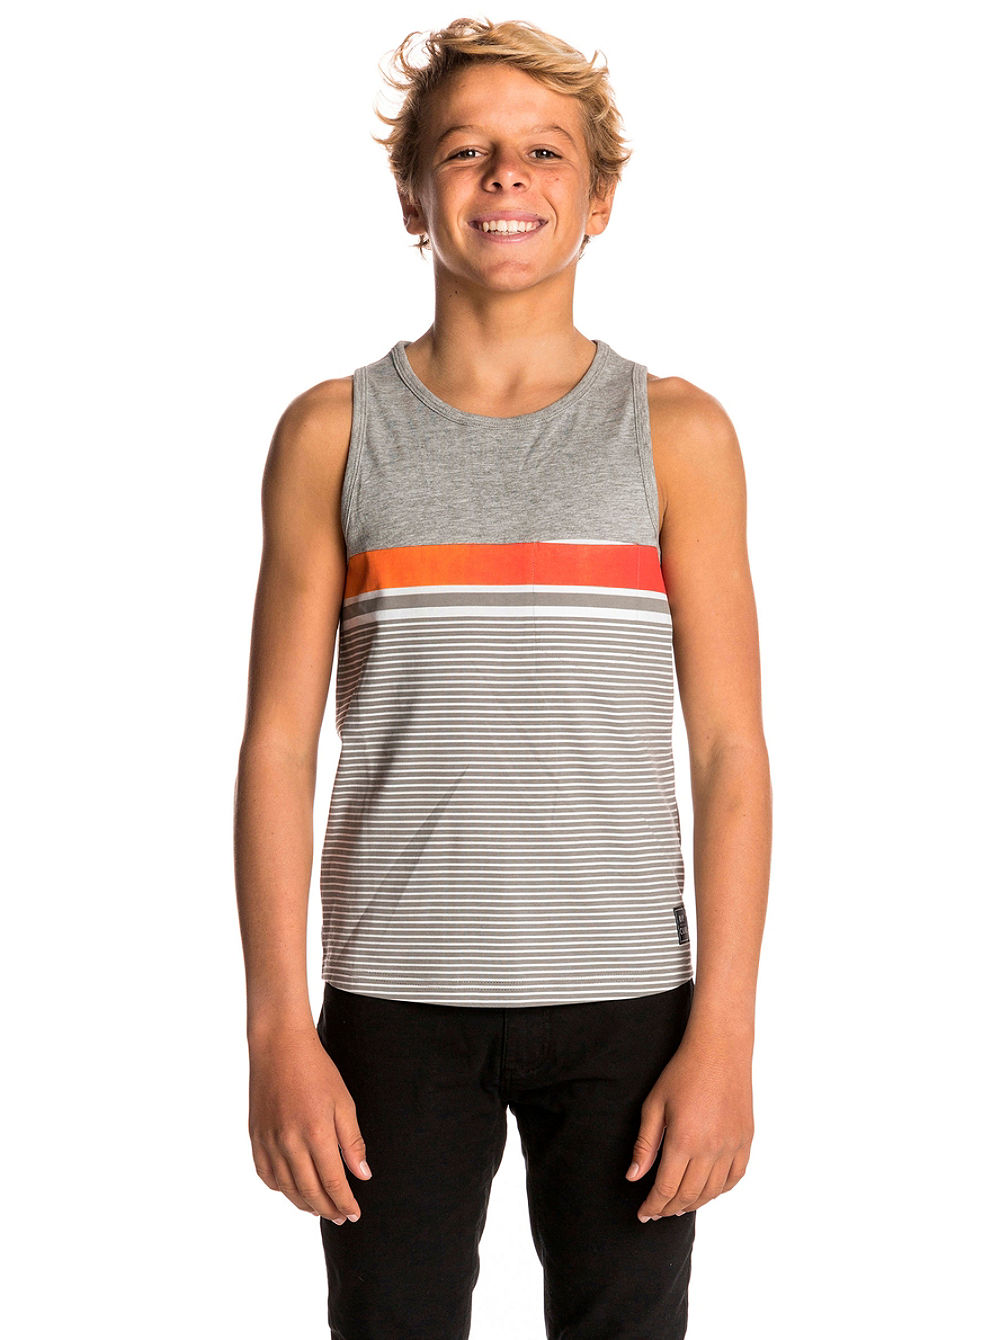 Gradian Stripe Tank Top Boys